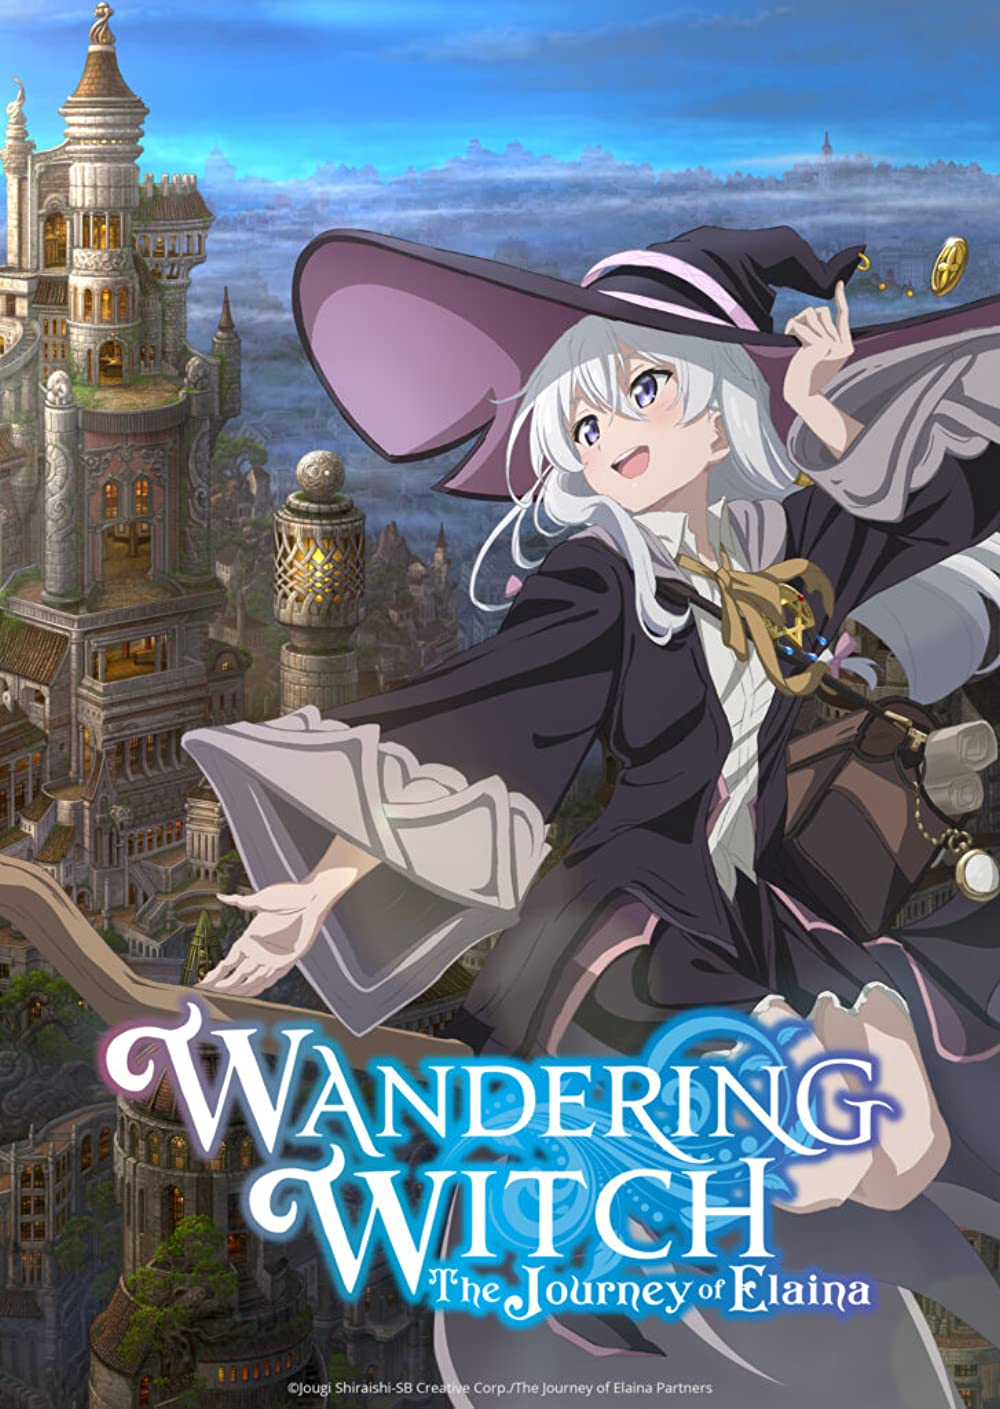 Wandering Witch: The Journey of Elaina Review